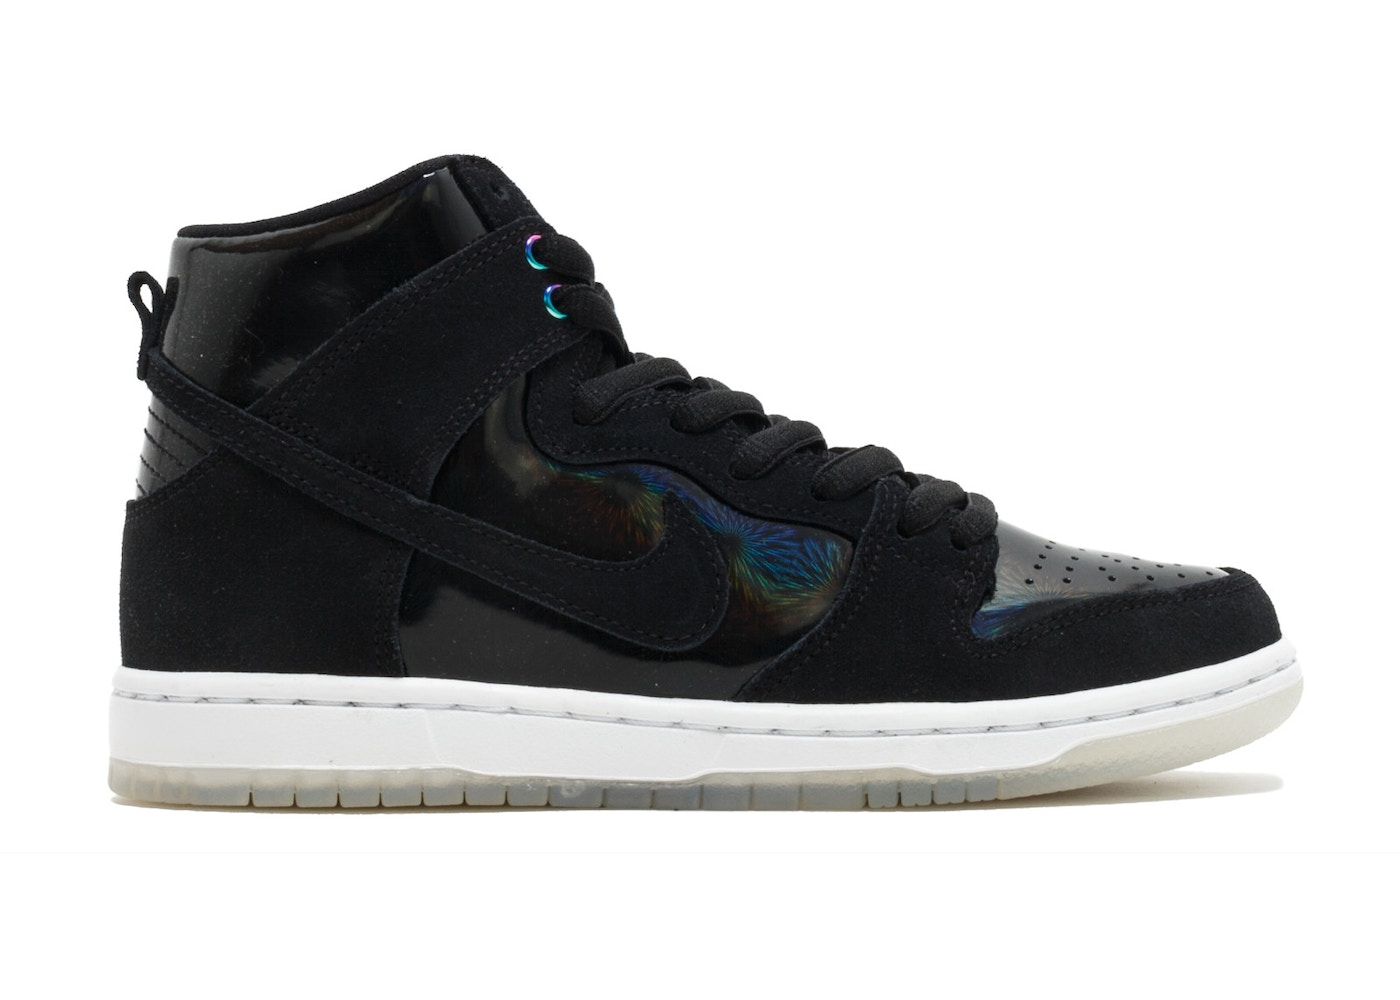 recoger congelador seco  Nike Sb Zoom Dunk High Pro Black/Black-White-Clear - 854851-001